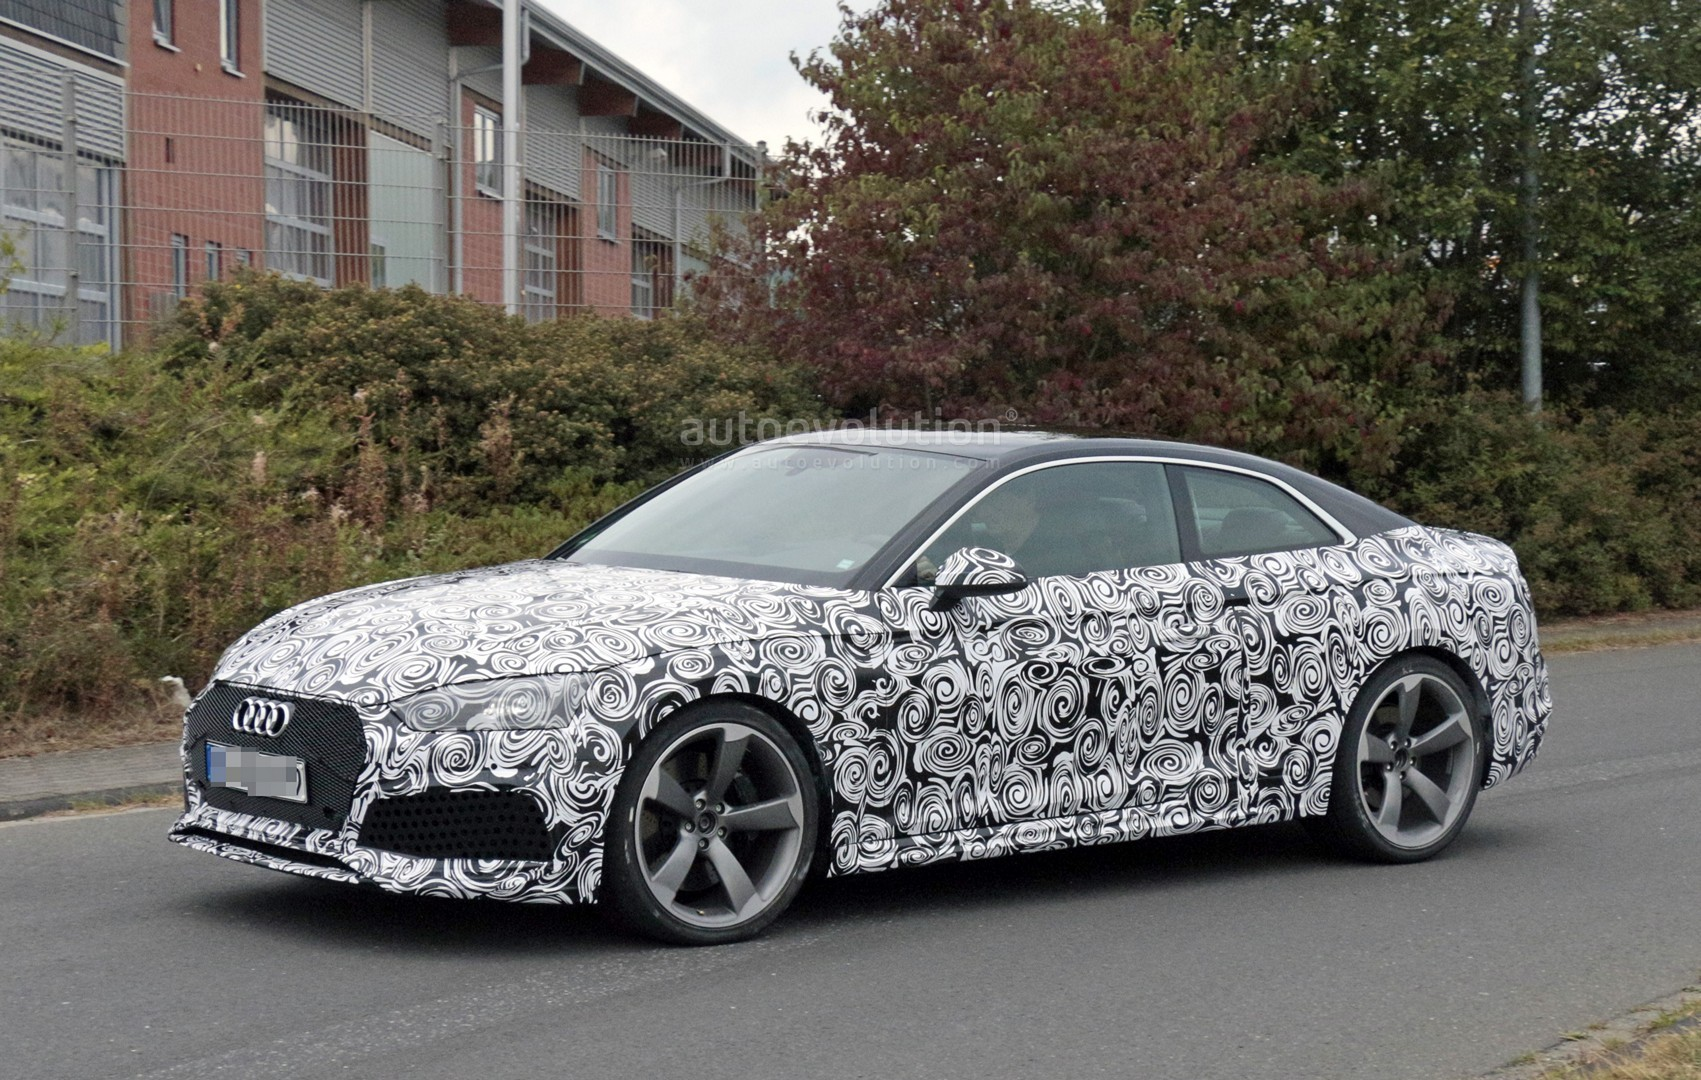 2018 audi rs5 coupe spied with production body for the first time autoevolution. Black Bedroom Furniture Sets. Home Design Ideas